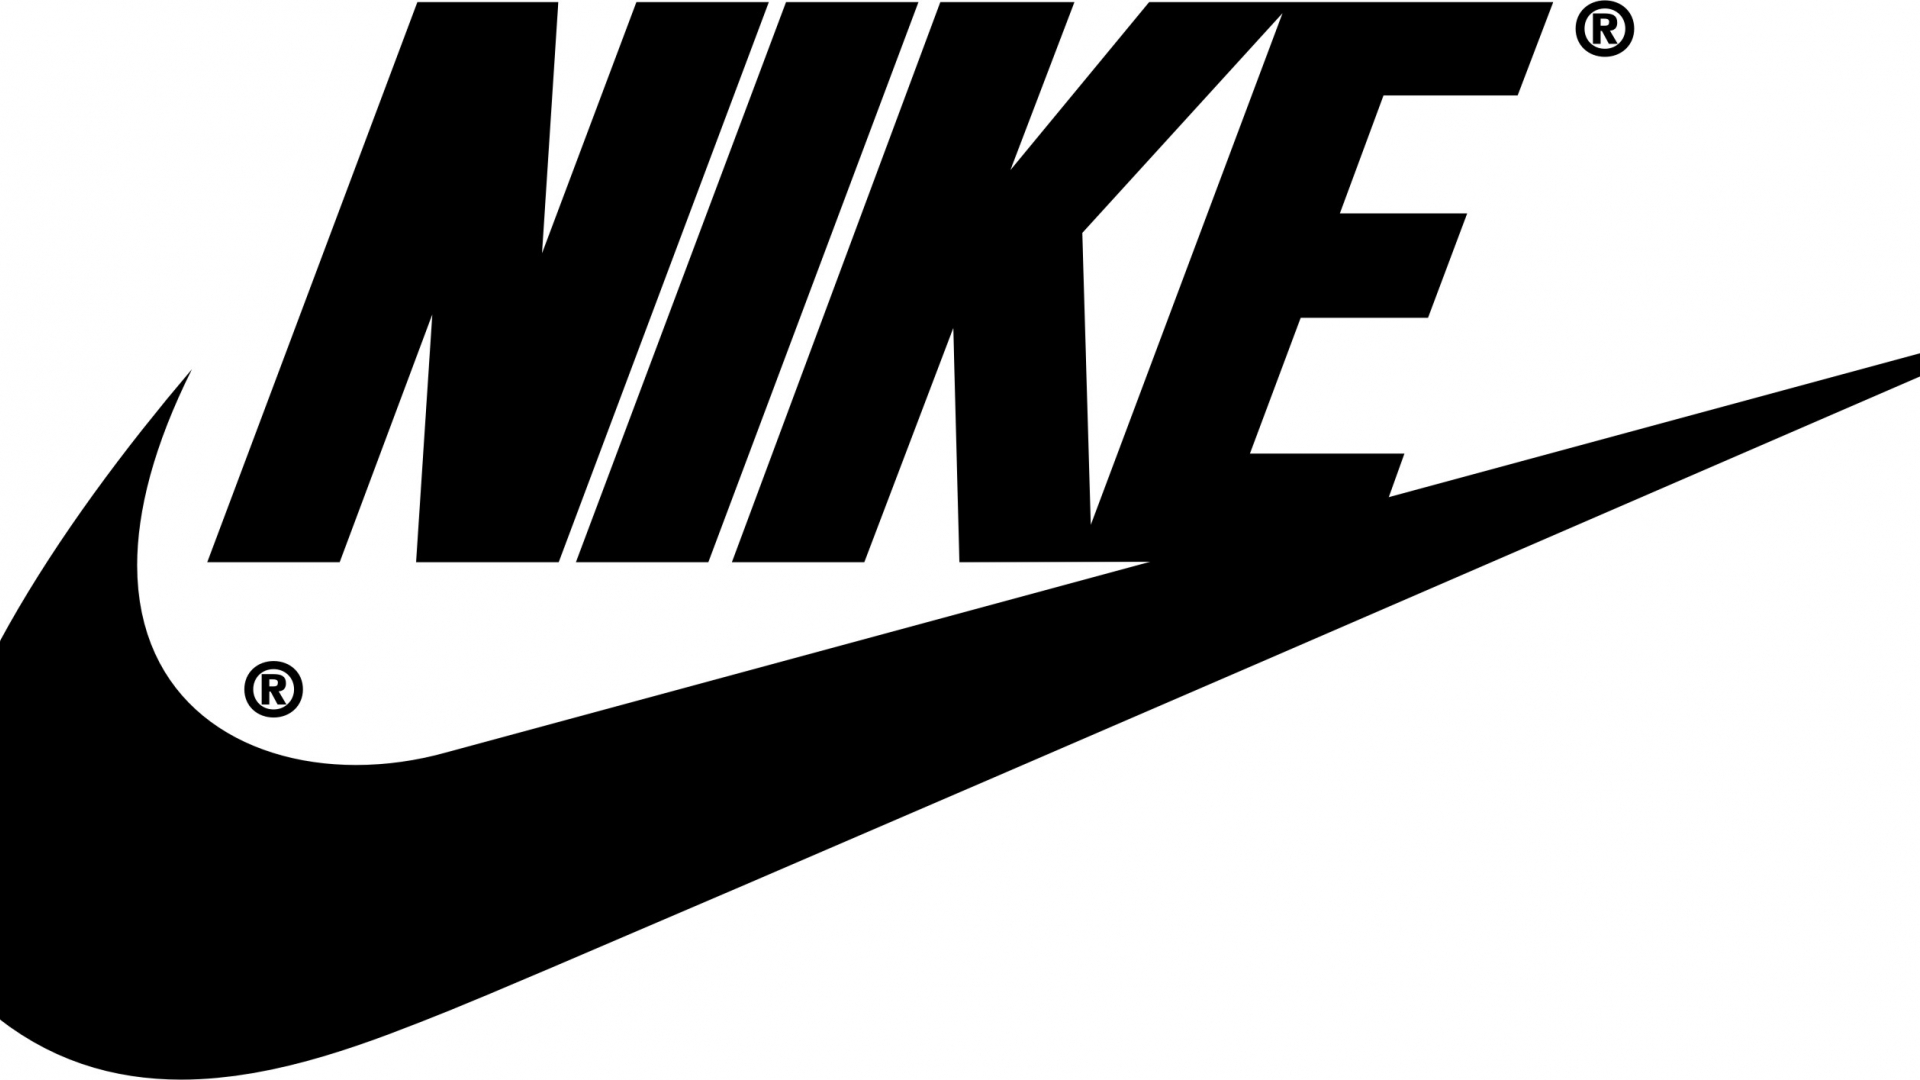 Free Download Nike Logo Hd Wallpapers Hd Wallpapers 2709x1415